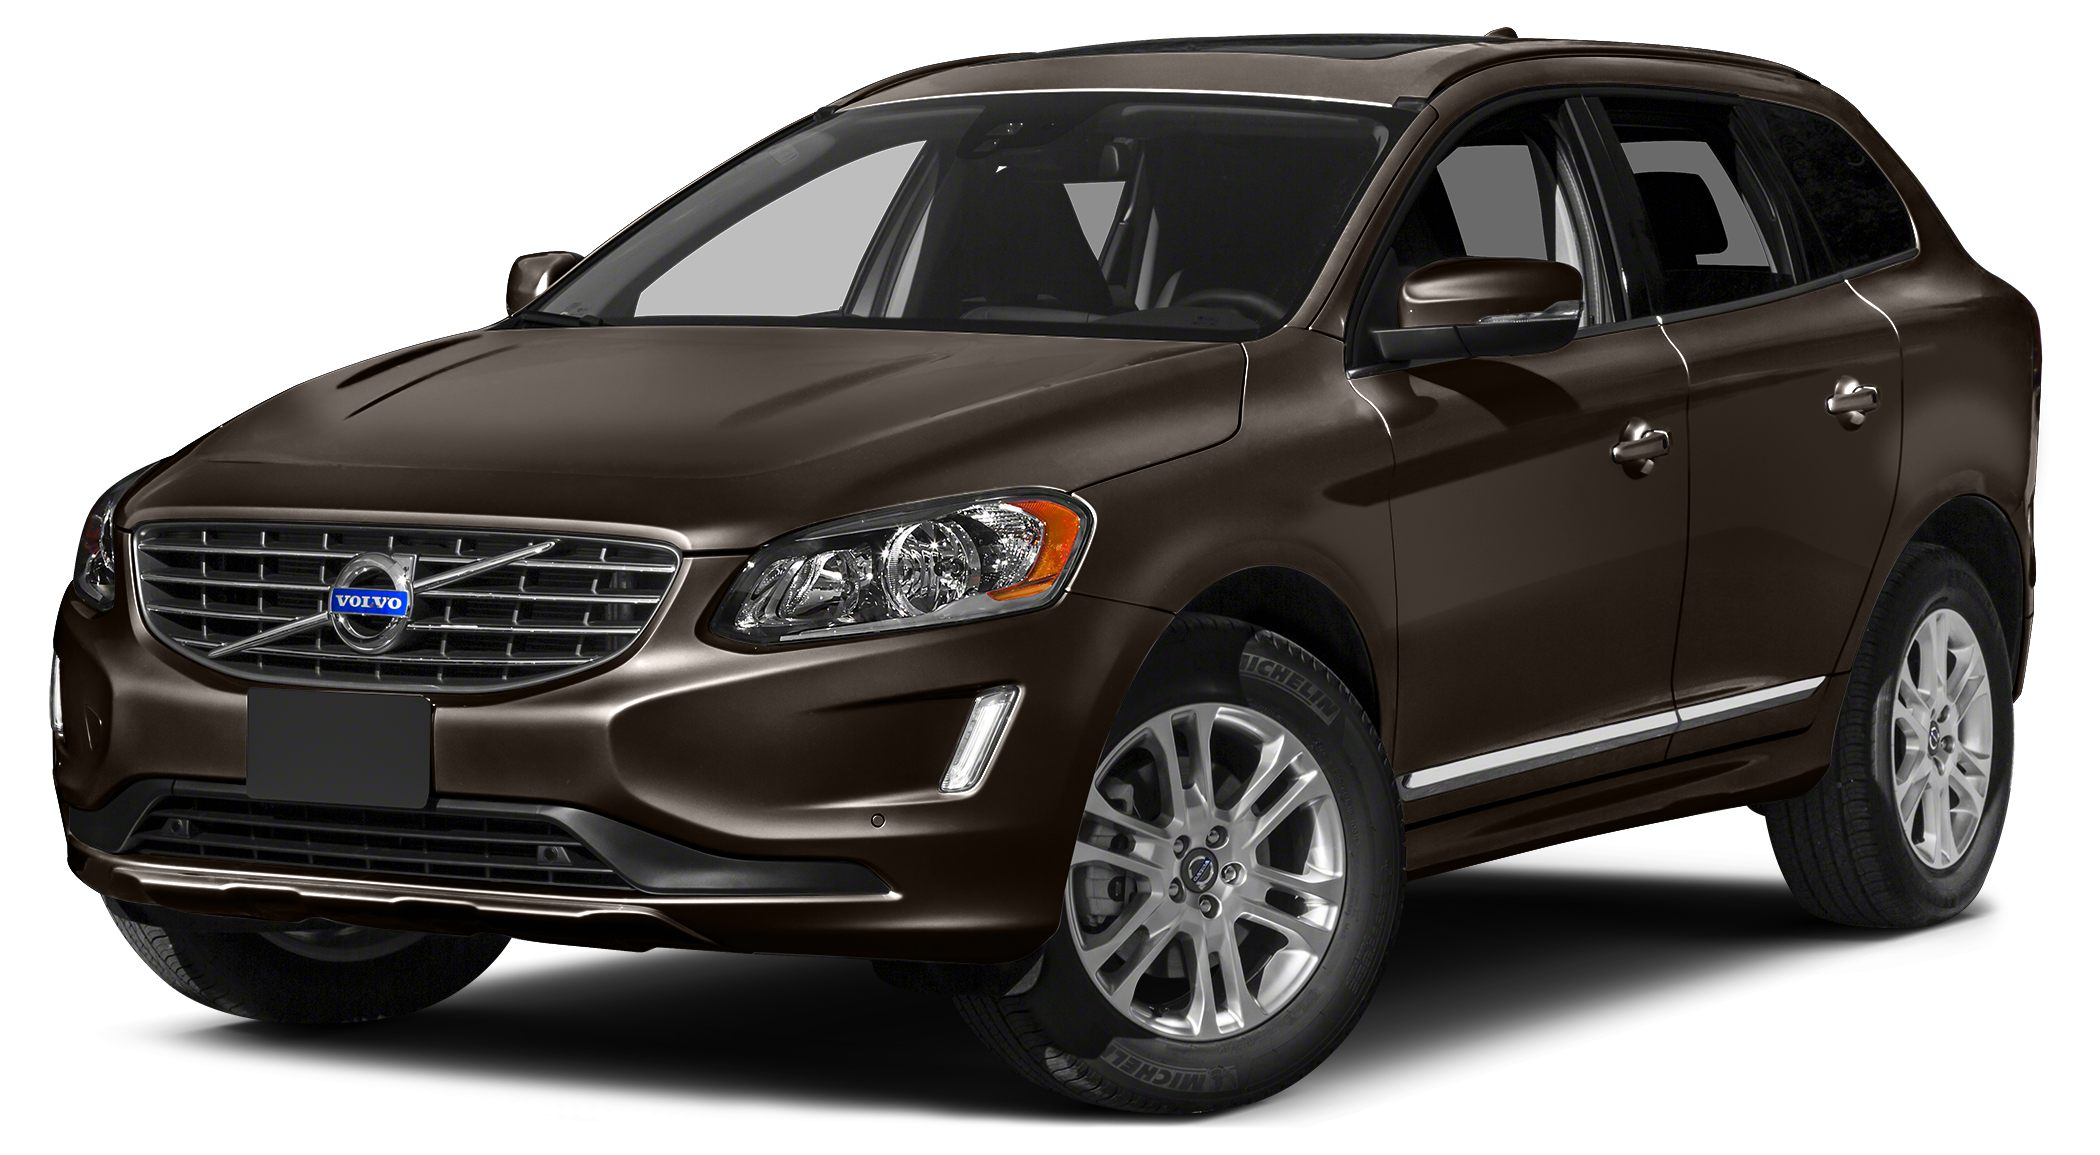 2014 Volvo XC60 32 WE SELL OUR VEHICLES AT WHOLESALE PRICES AND STAND BEHIND OUR CARS  COME